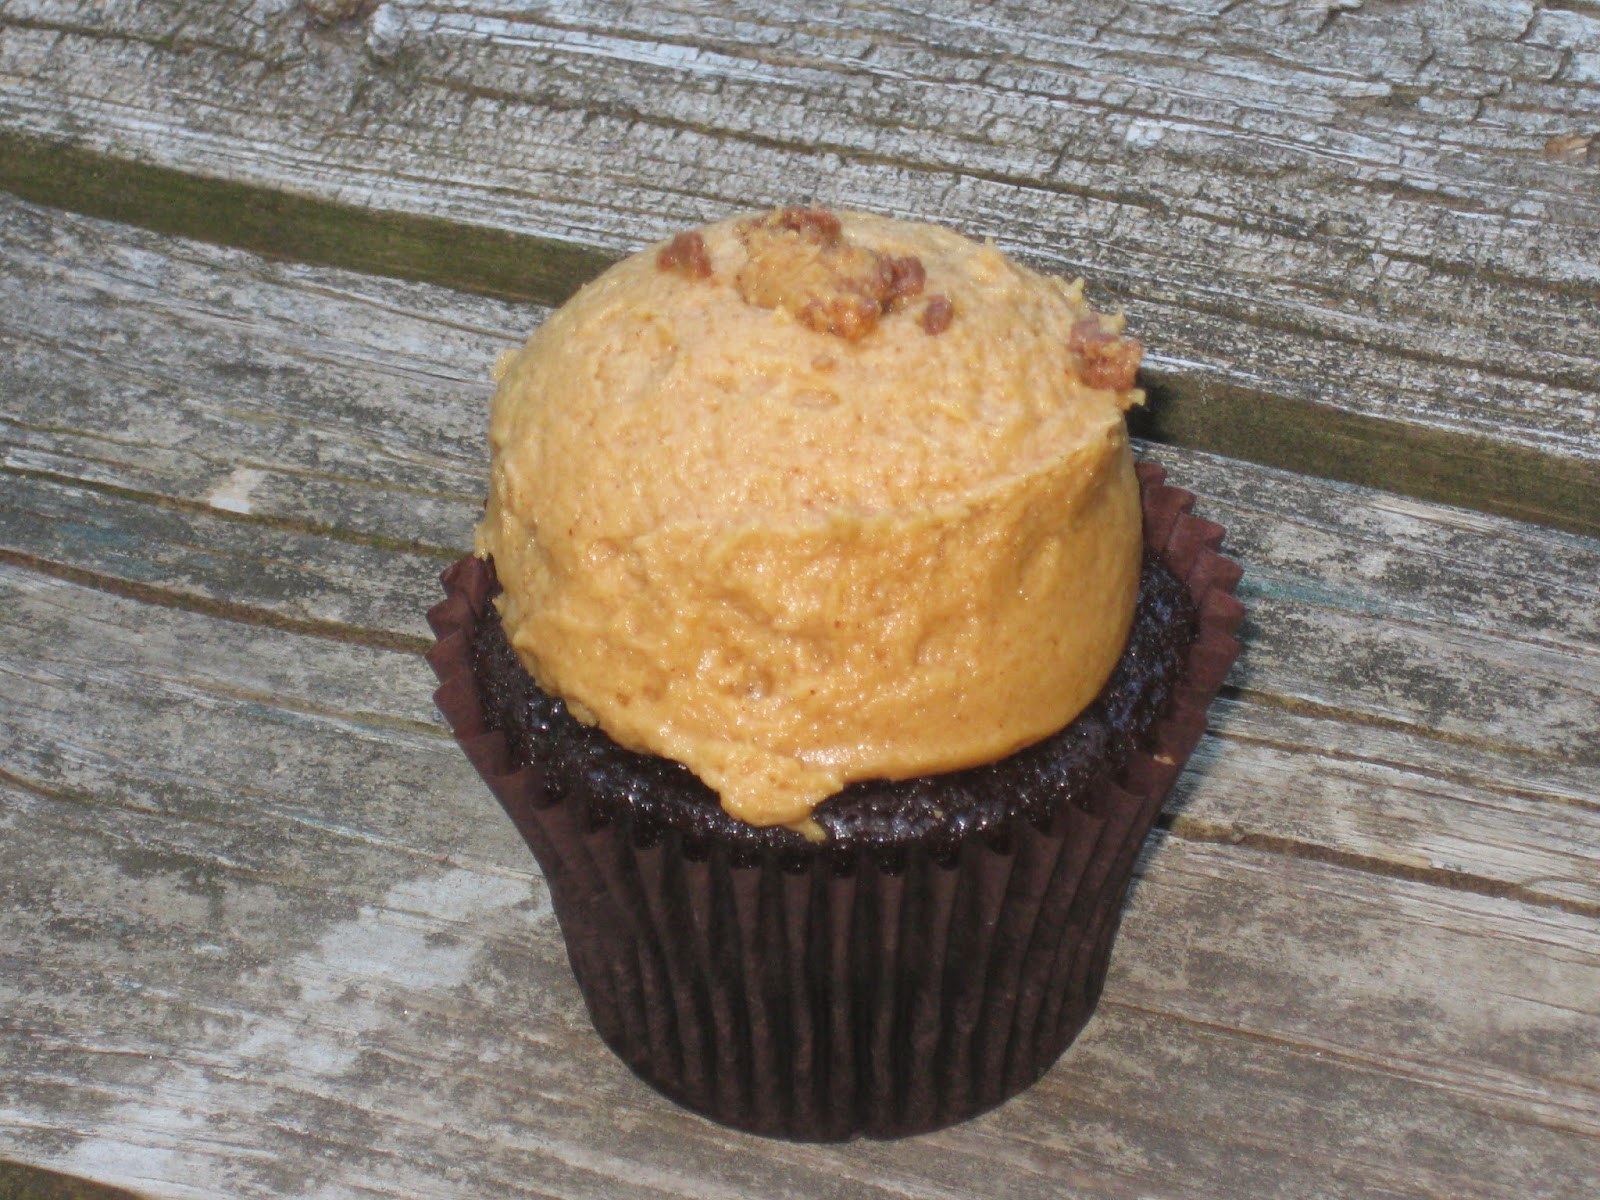 Chocolate Peanut Butter Cupcake from Flavory Cupcakery